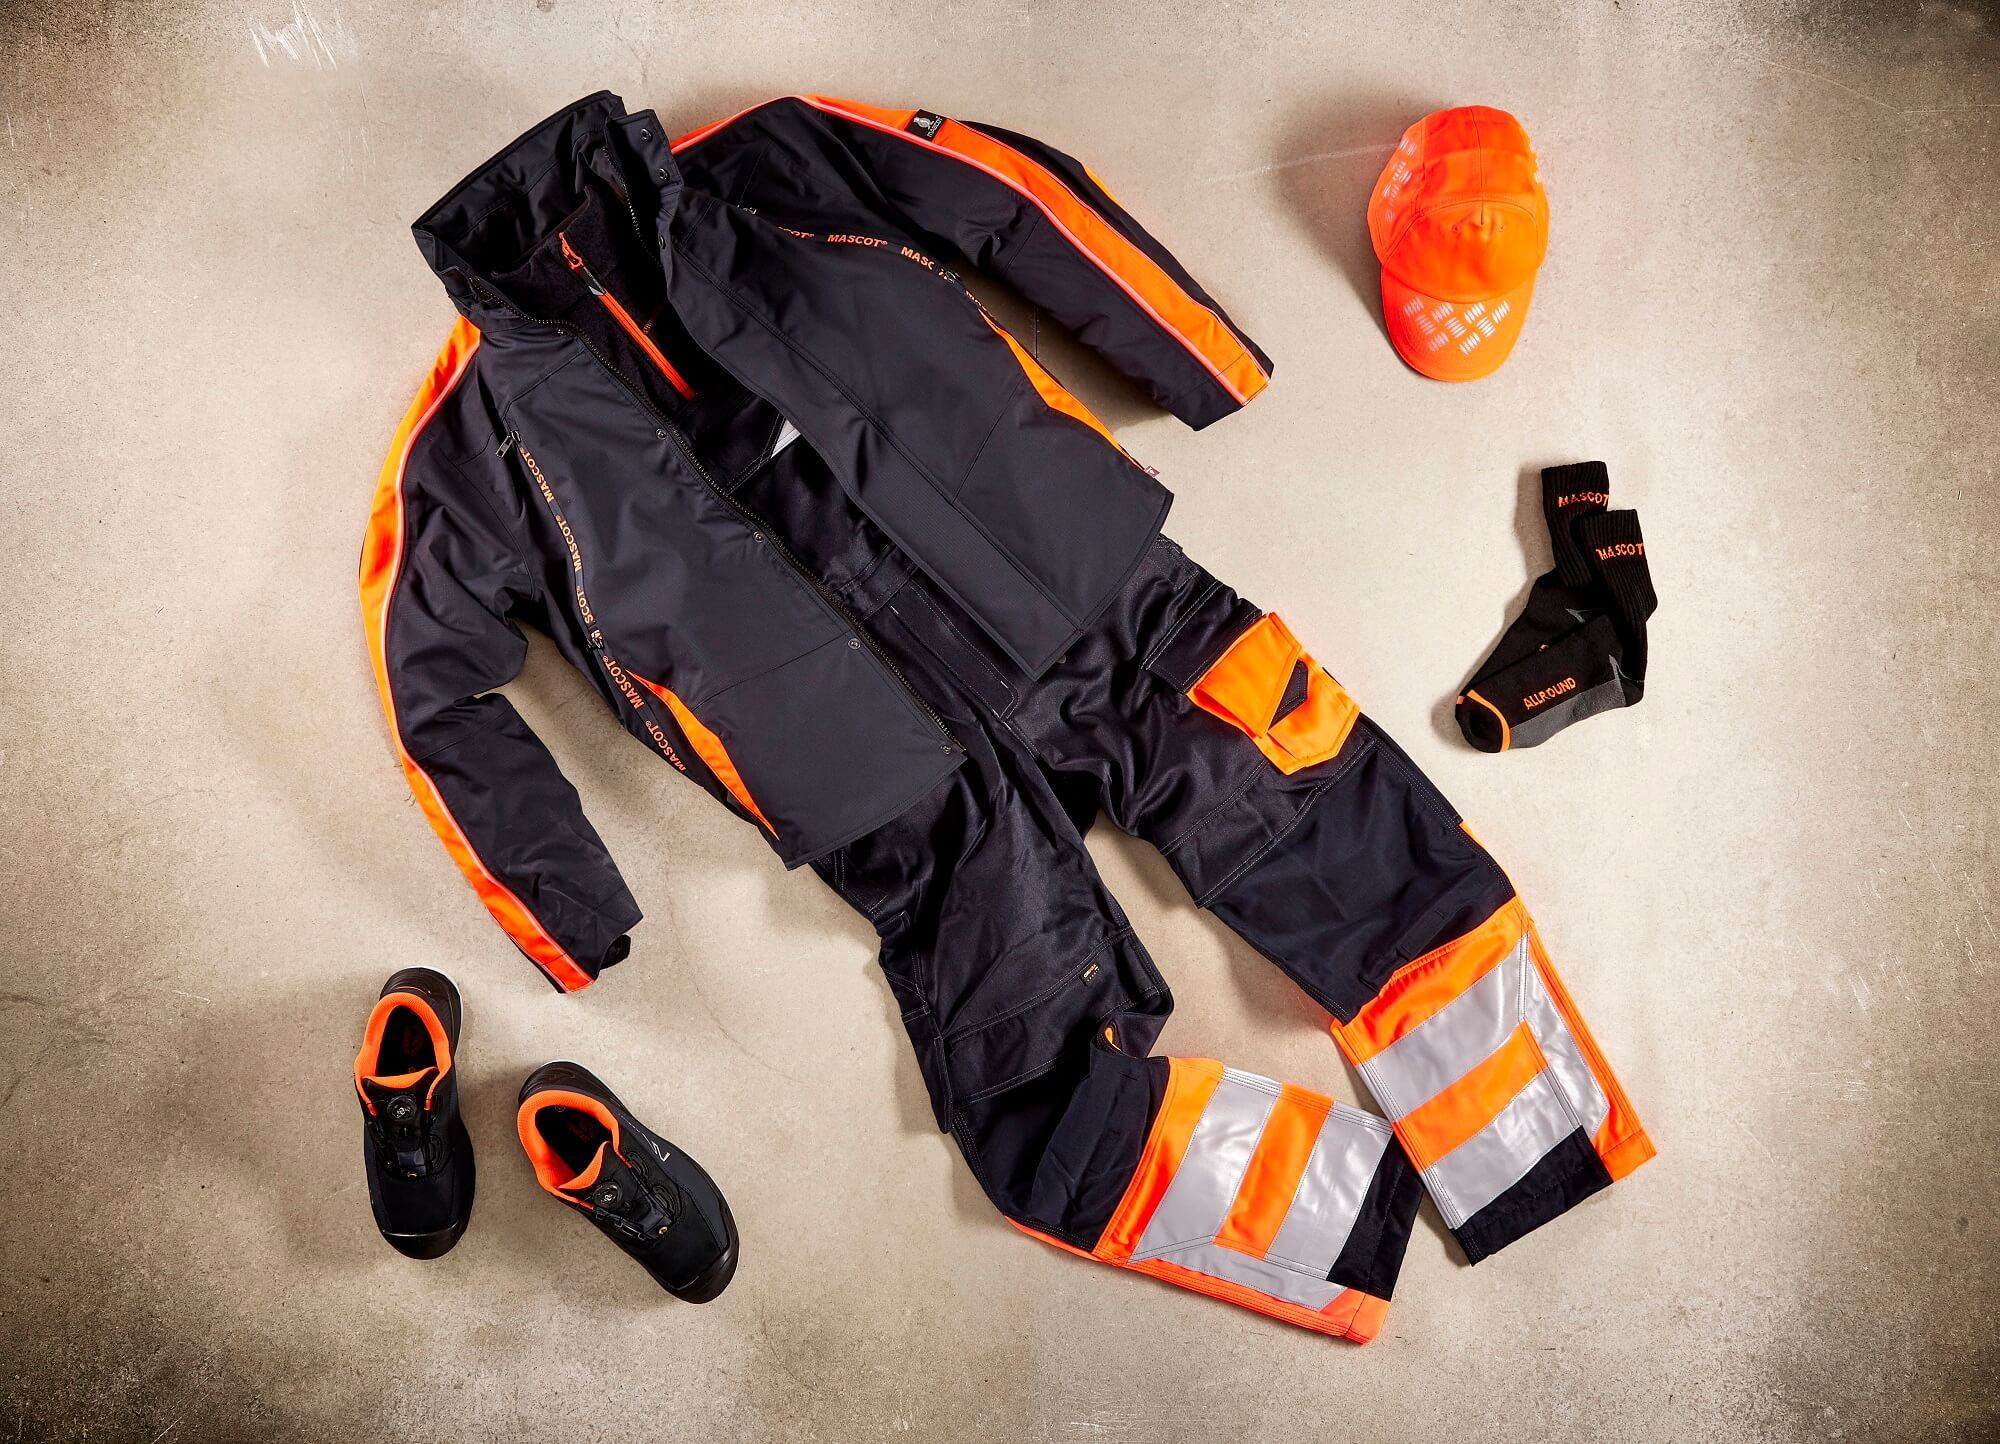 Fluorescent orange - Safety Shoe, Work Pants & Jacket - Collage